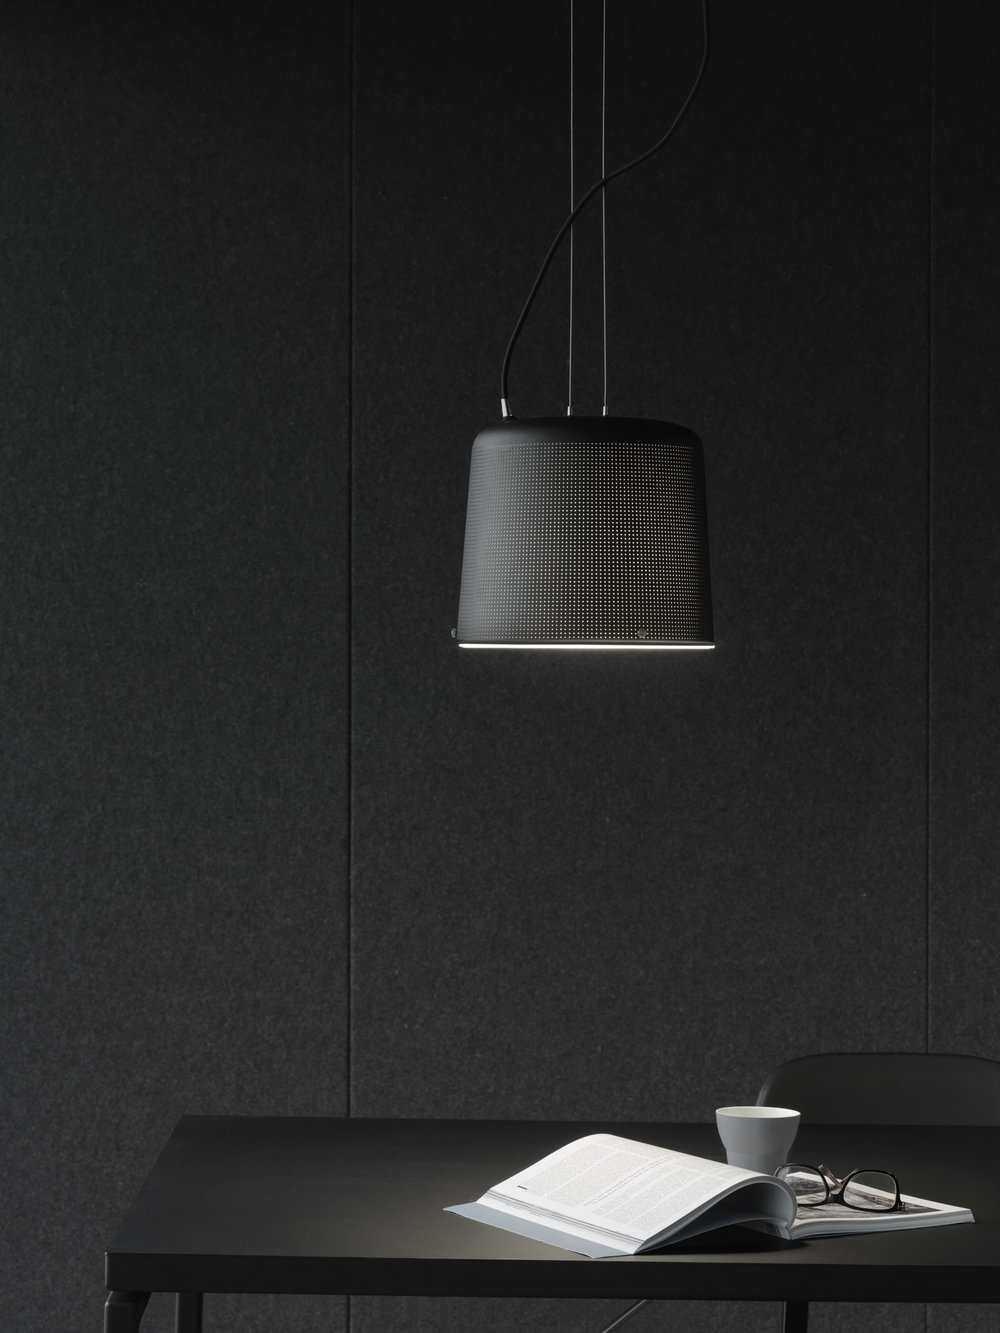 Vipp701_Detail_Tablelamp01_Low.jpg